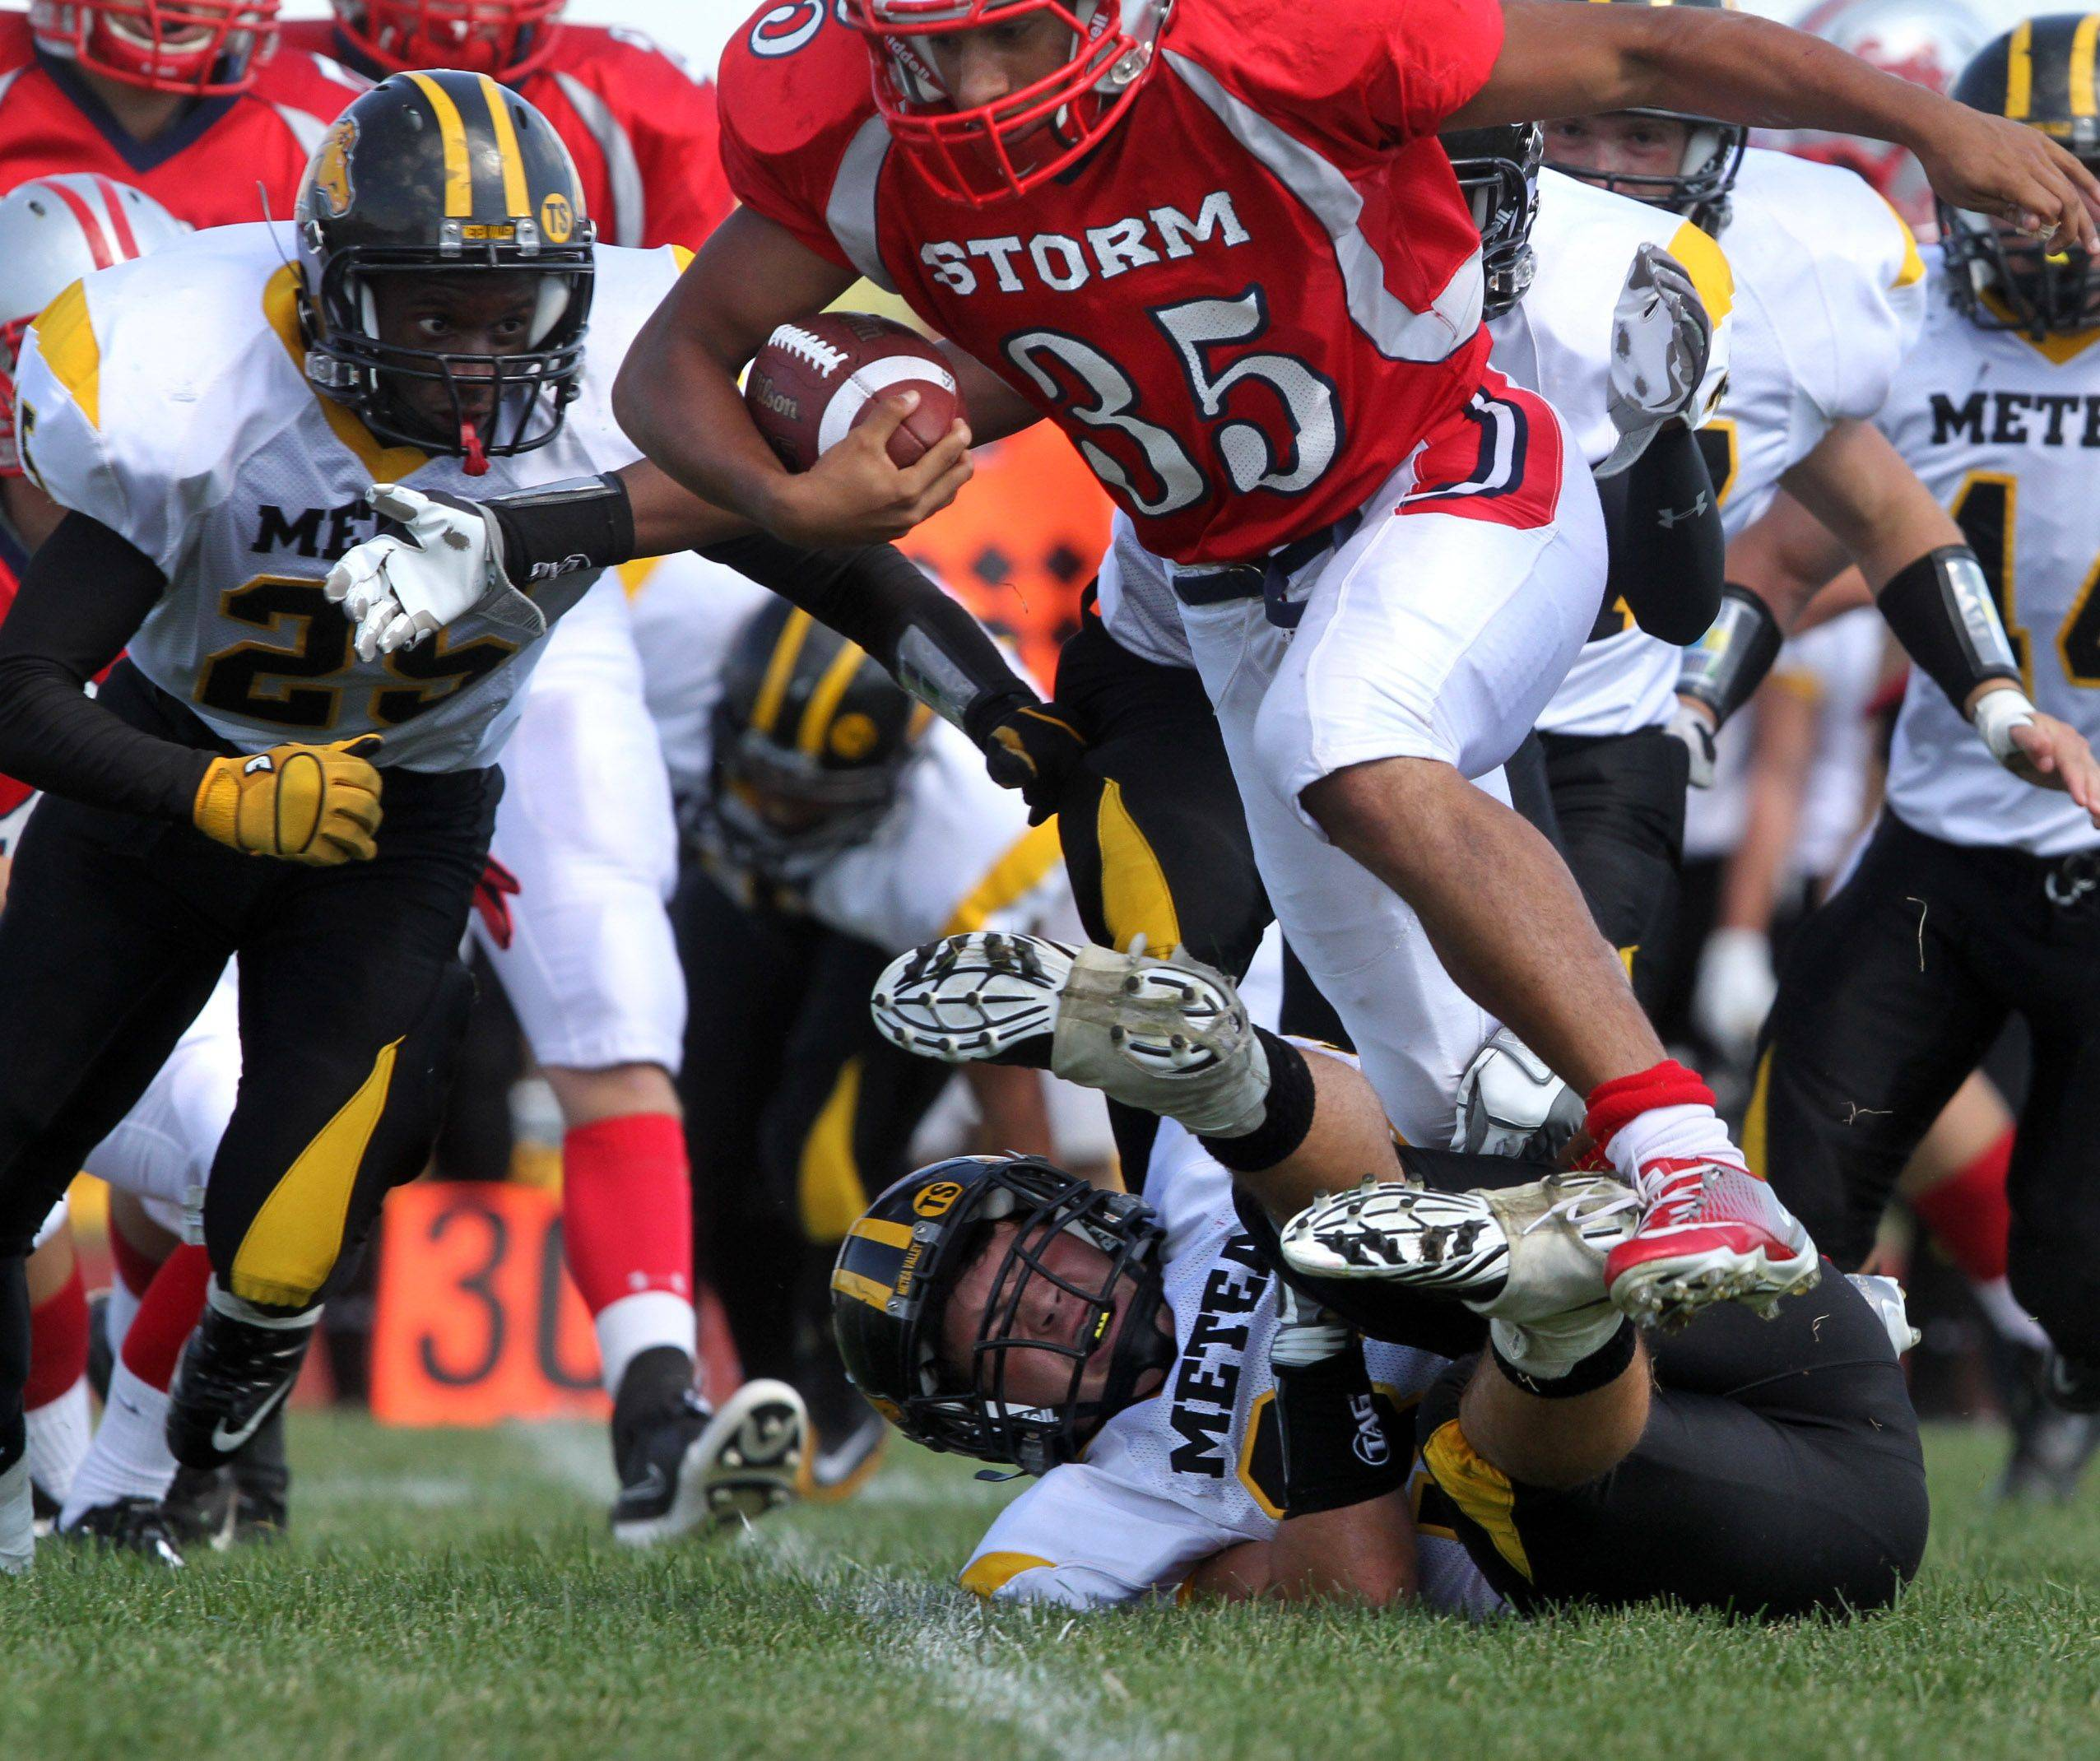 South Elgin's Adolfo Pacheco runs over a Metea Valley defender for a touchdown Saturday.